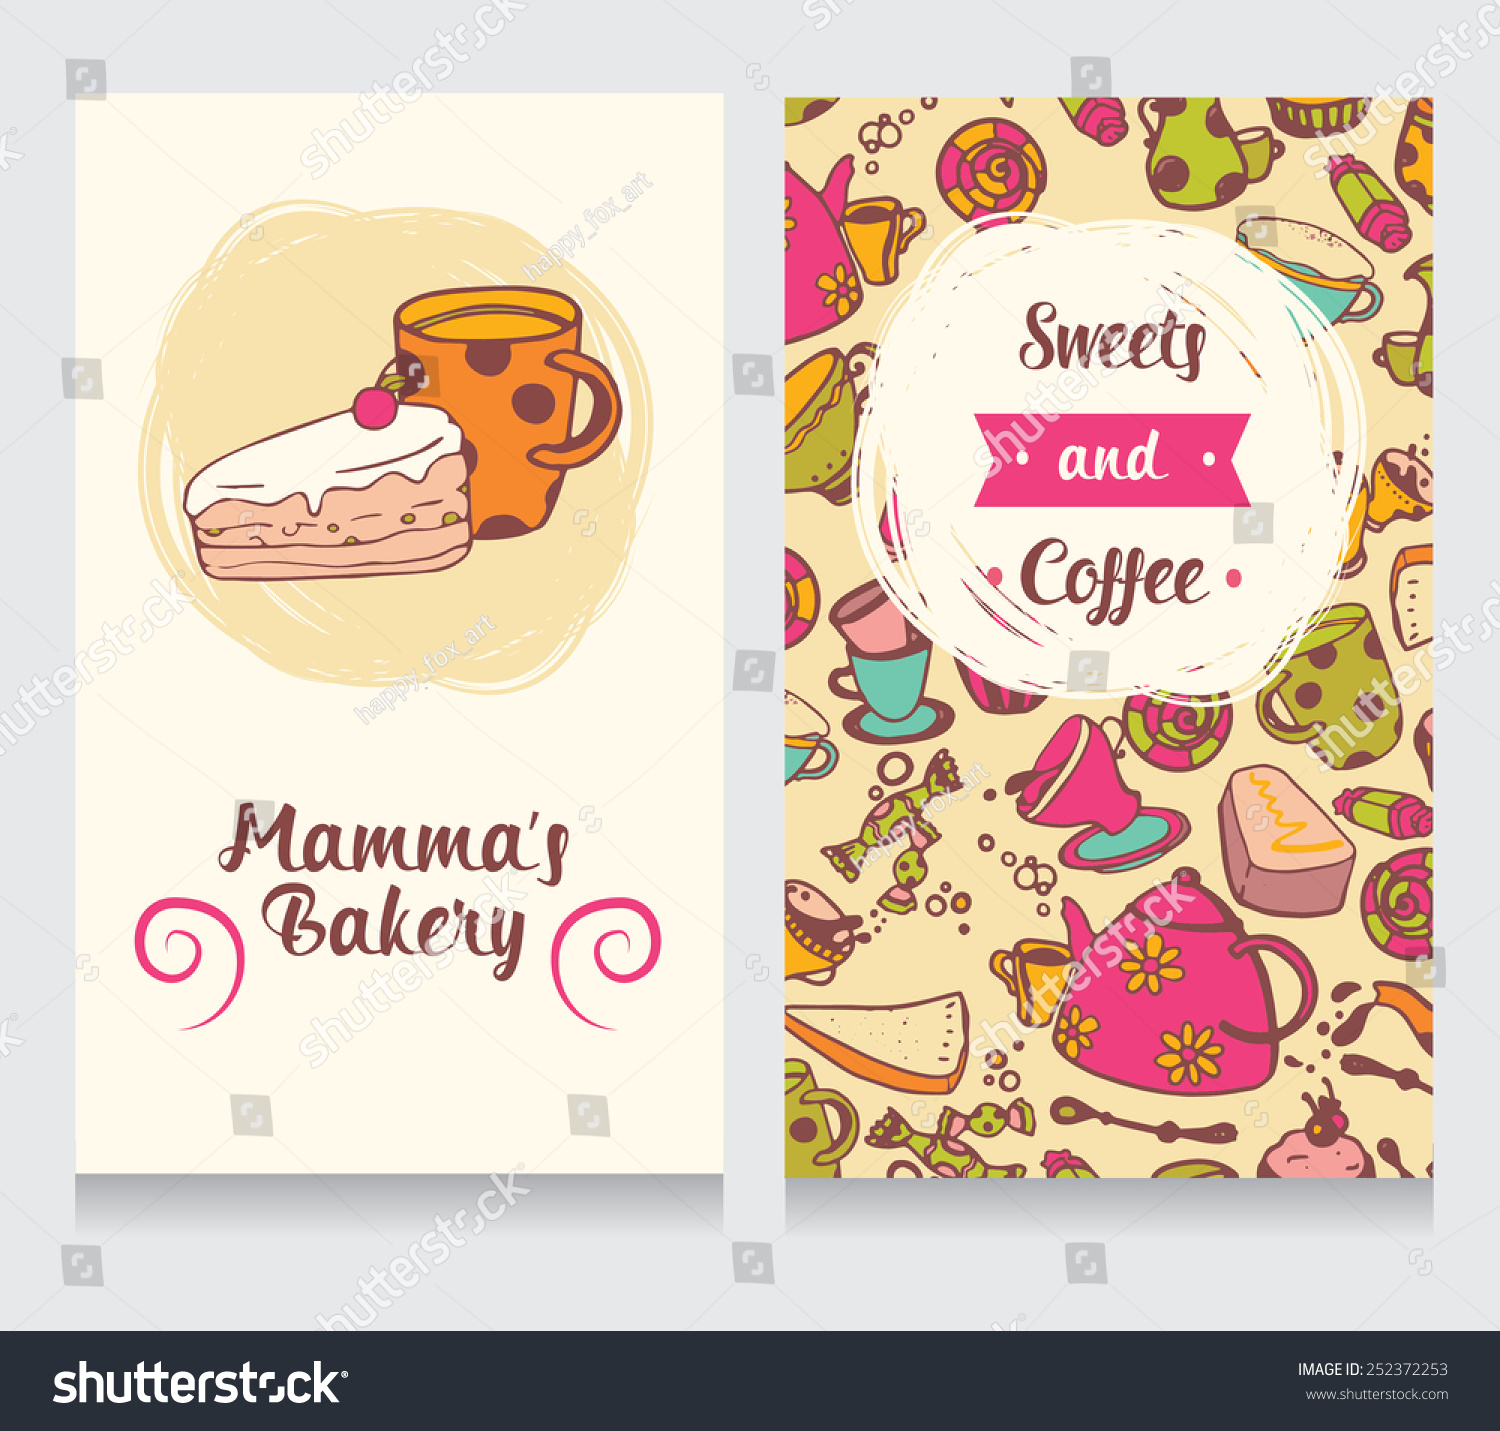 Cute Funny Business Card Bakery Vector Stock Vector HD (Royalty Free ...